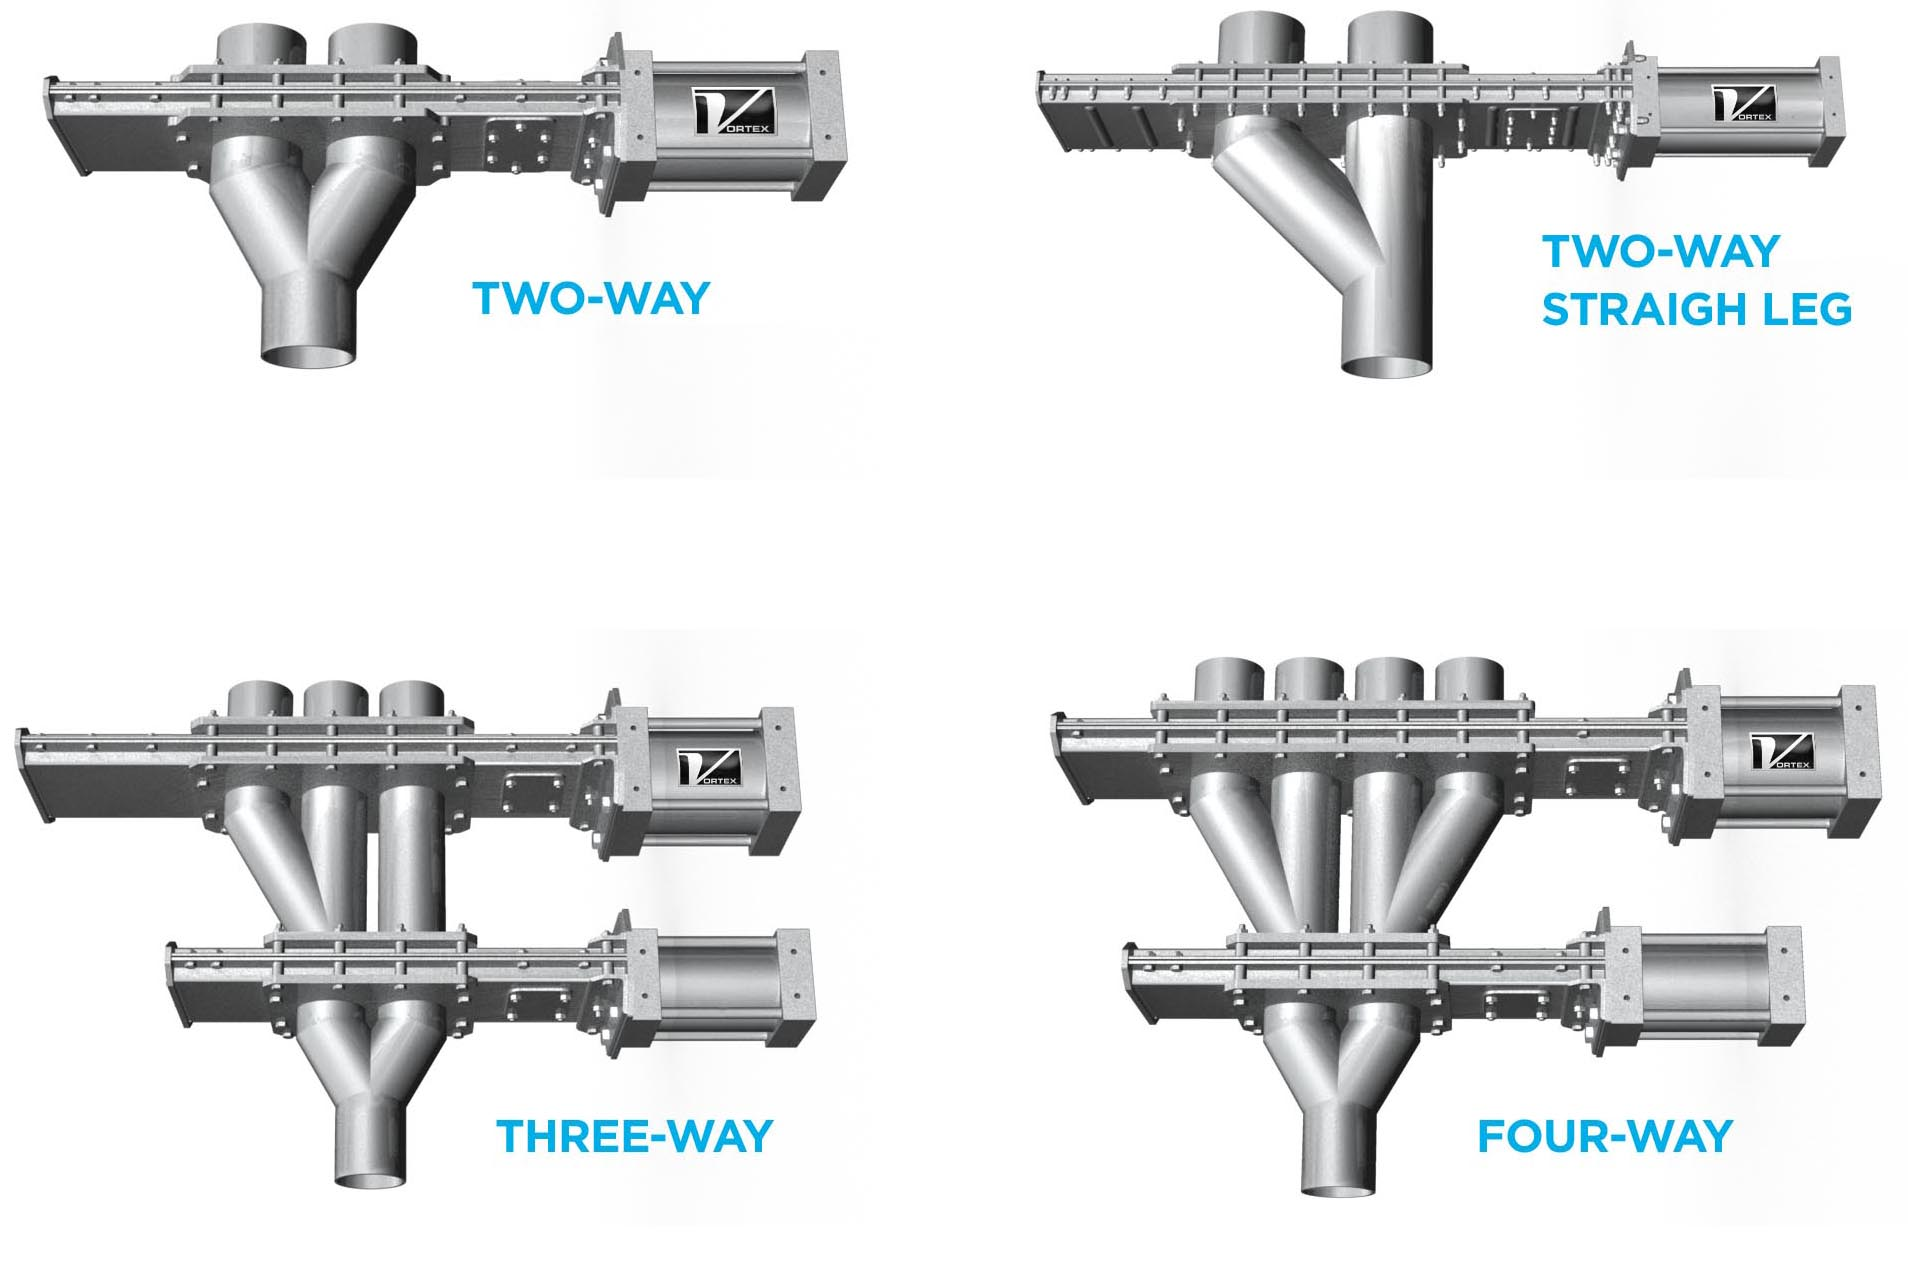 Options for the Wye Line Diverter. Two-way, Two-way straight Leg, Three-way, Four-Way.